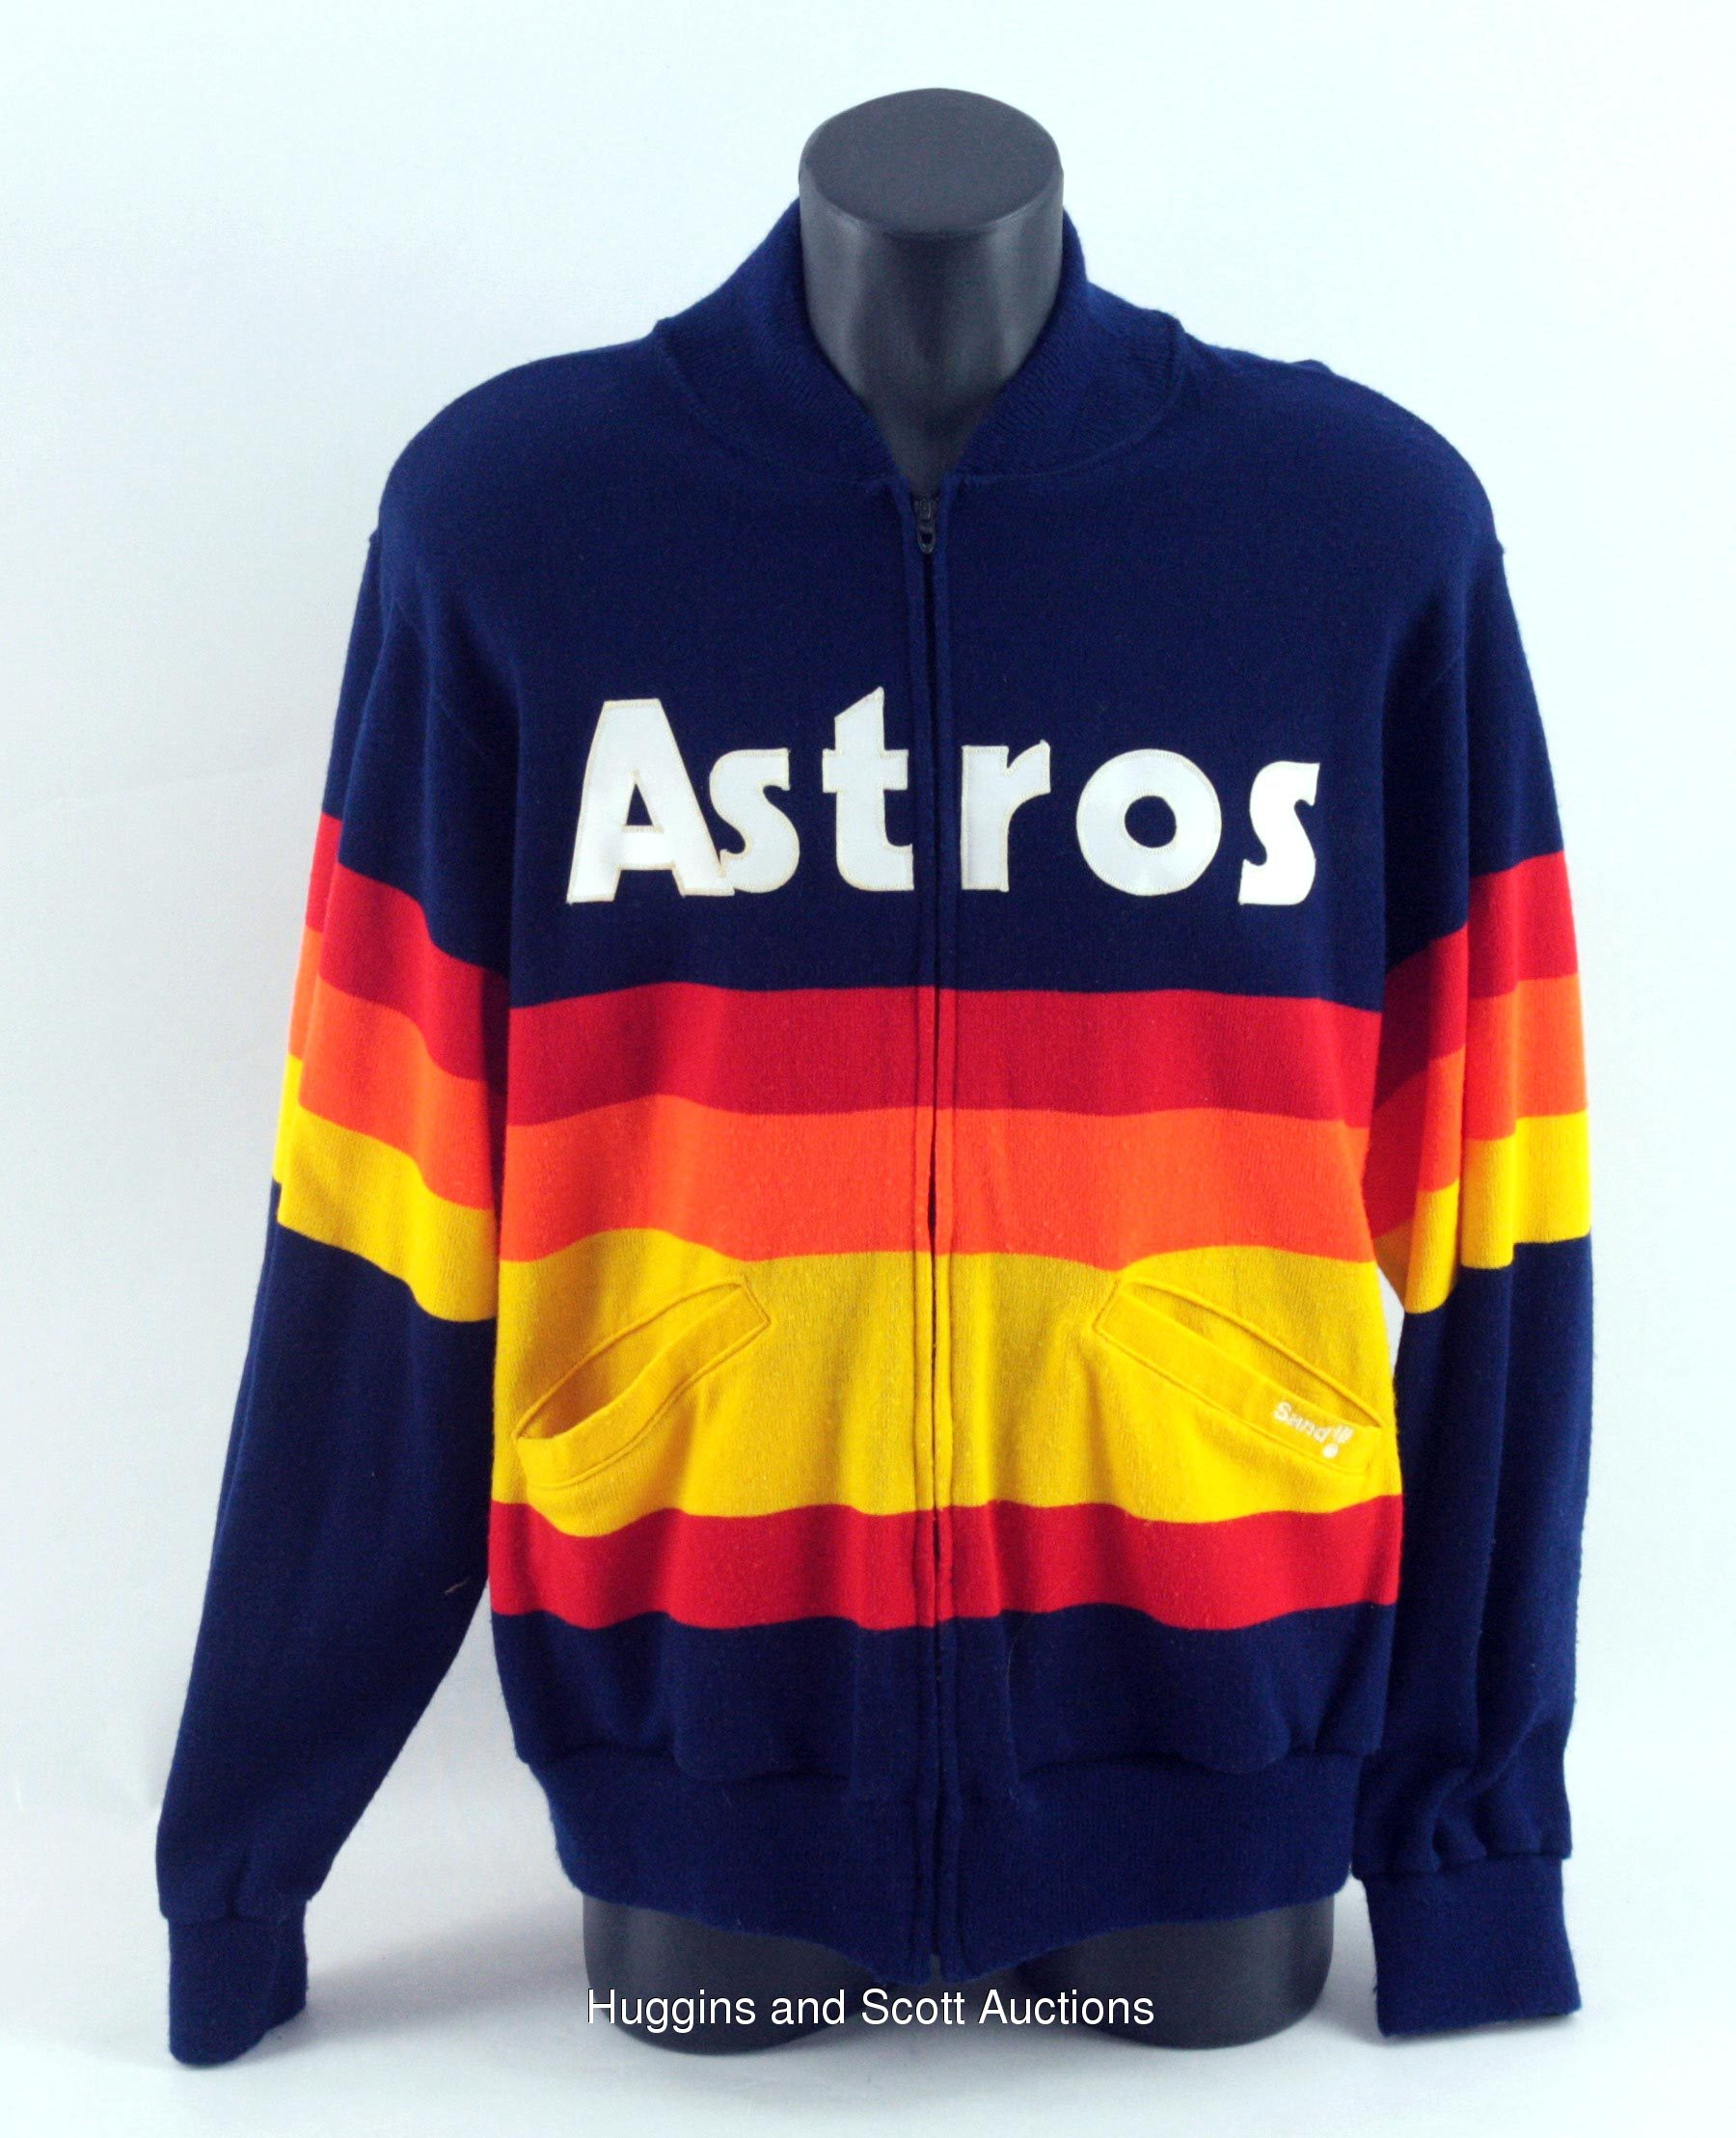 Astros Sweater Sweater Jeans And Boots